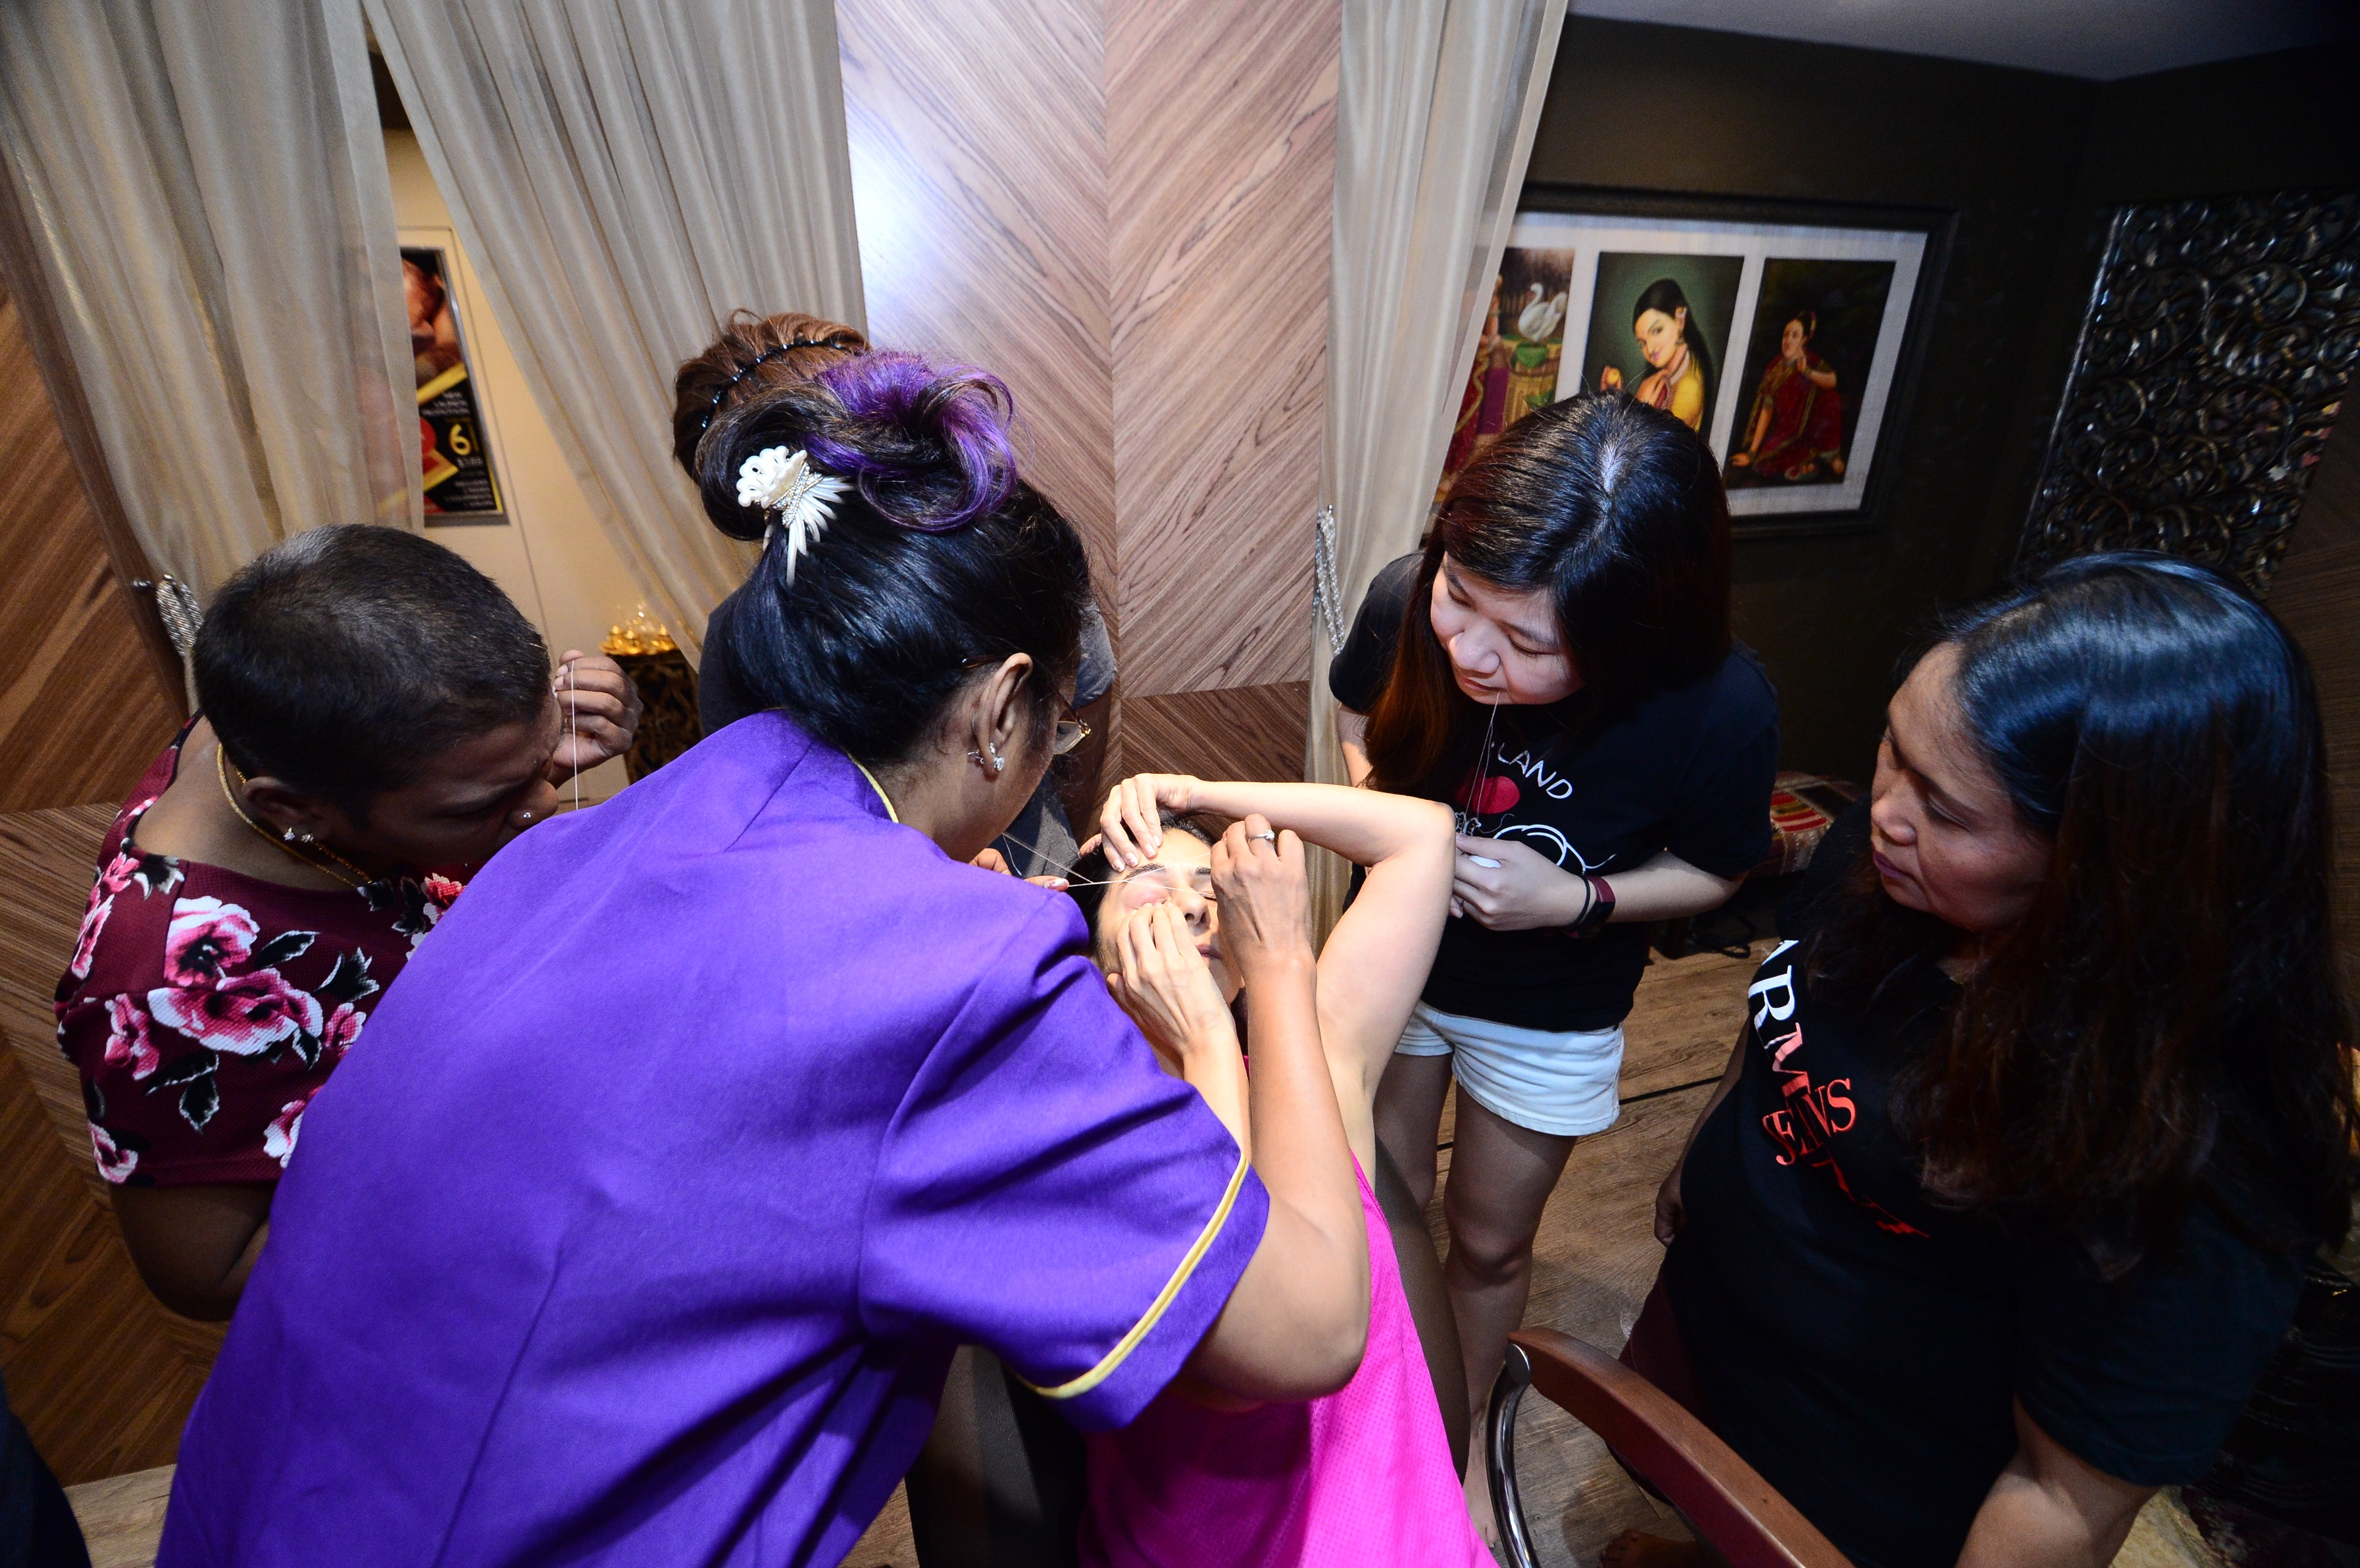 Single mothers from Yio Chu Kang Zone 7 RC were delighted to learn basics of eye brow threading from corporate volunteers from Rupini's, as they can apply the skills at home to look good and feel good.